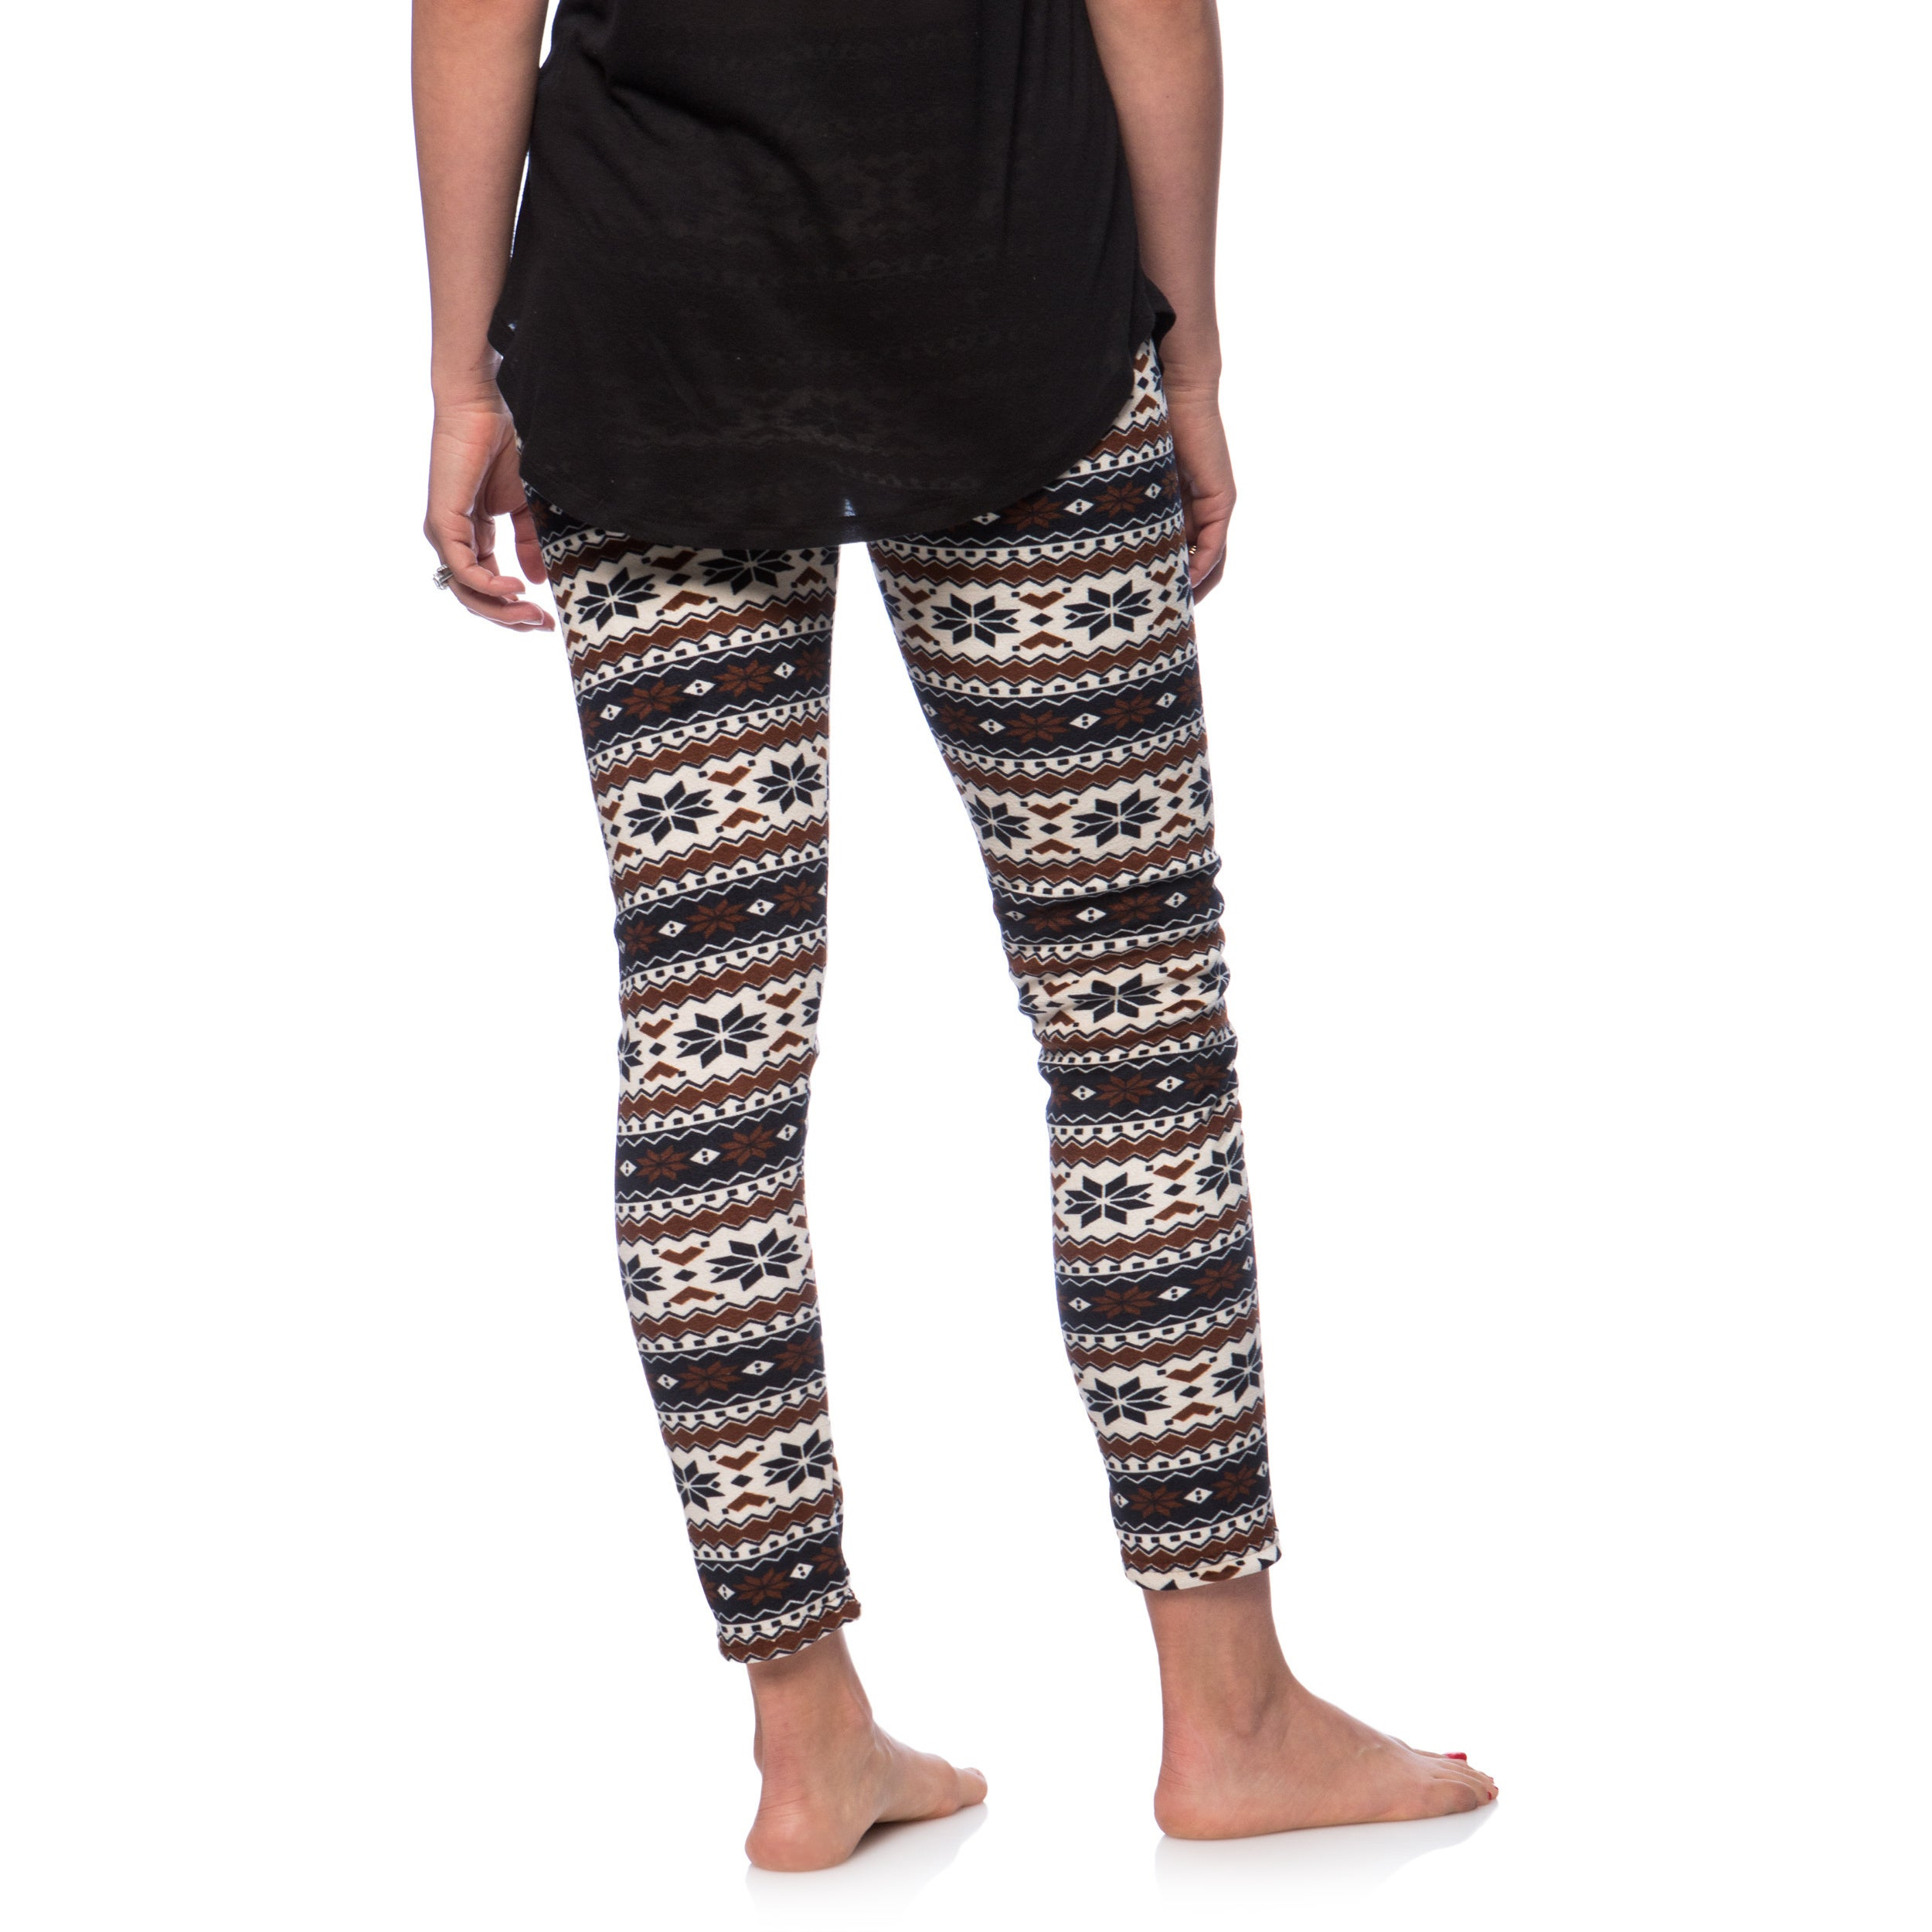 d814ca455bb6aa Shop Women's Fleece Lined Navy/ Brown Fair Isle Print Leggings - Free  Shipping On Orders Over $45 - Overstock - 10553997